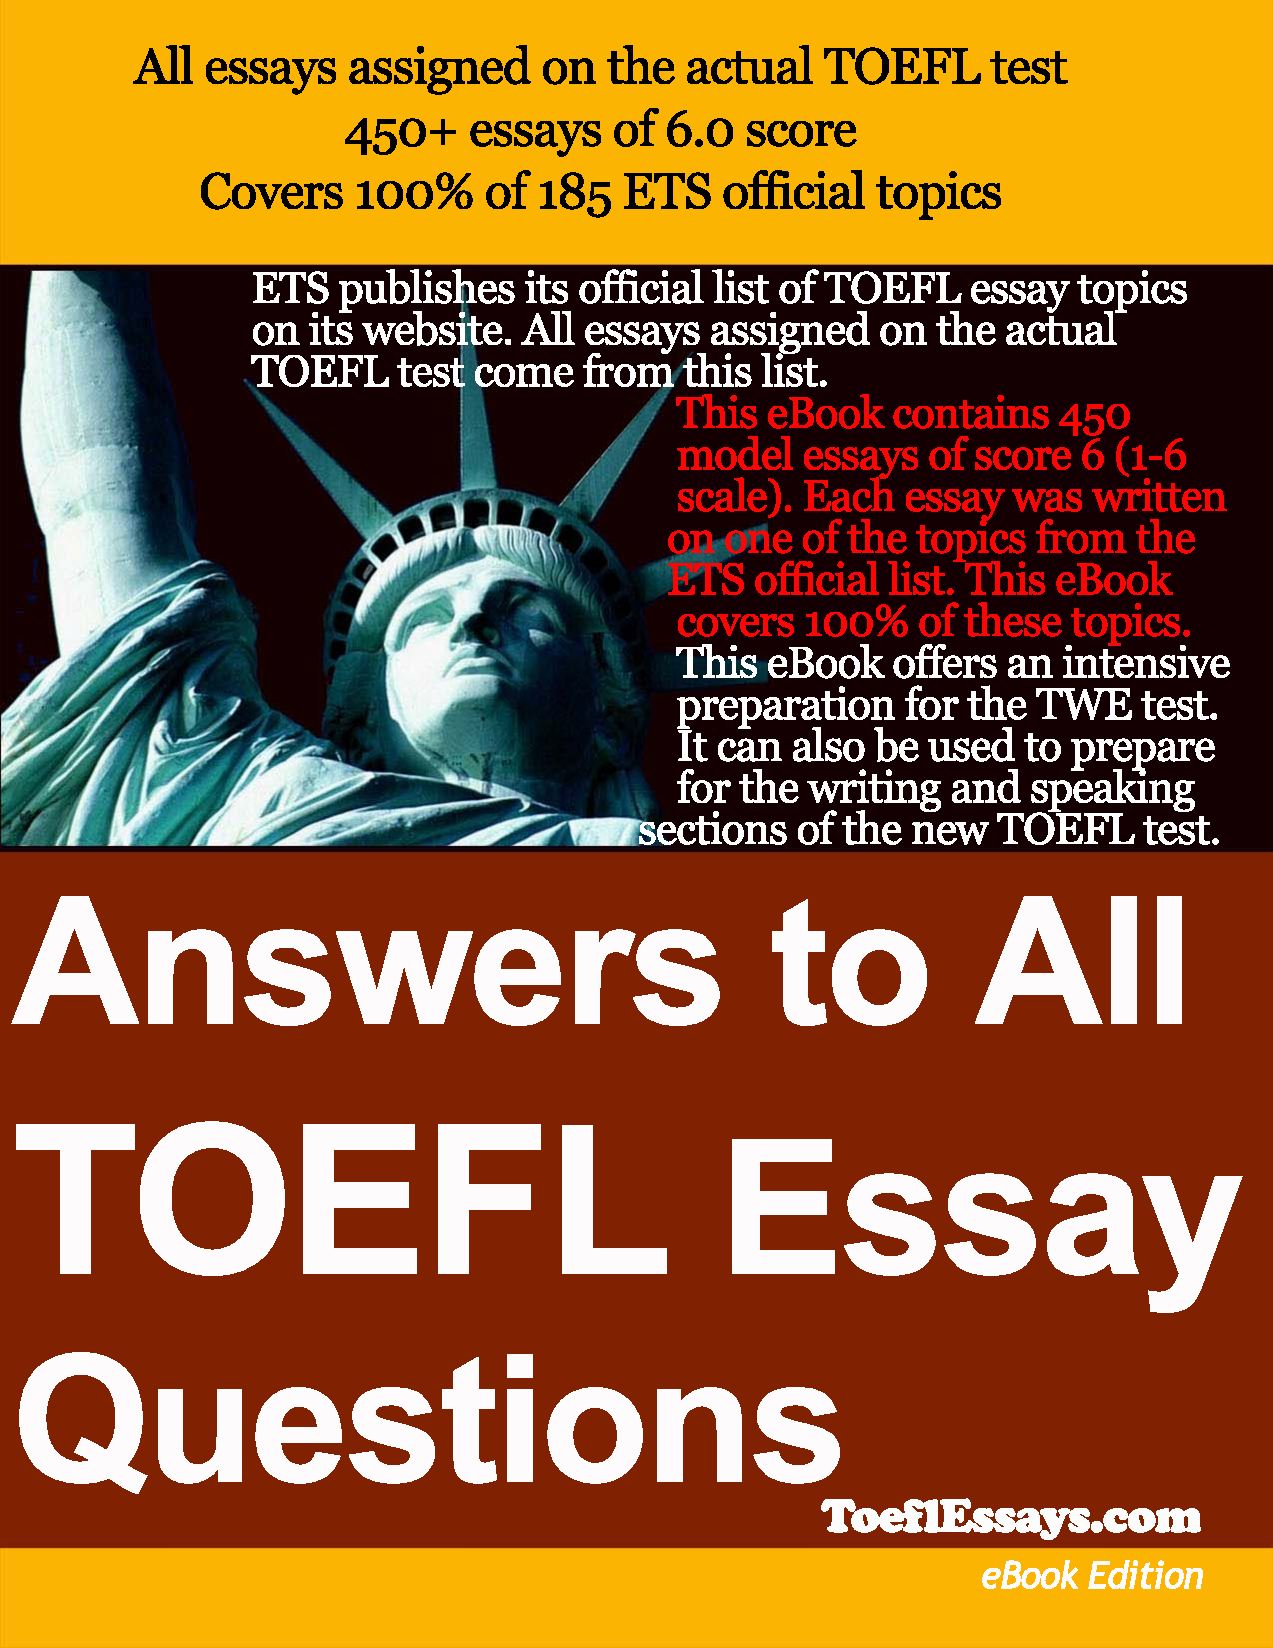 all essay topics all quiet on the western front essay topics answers to all toefl essay questions